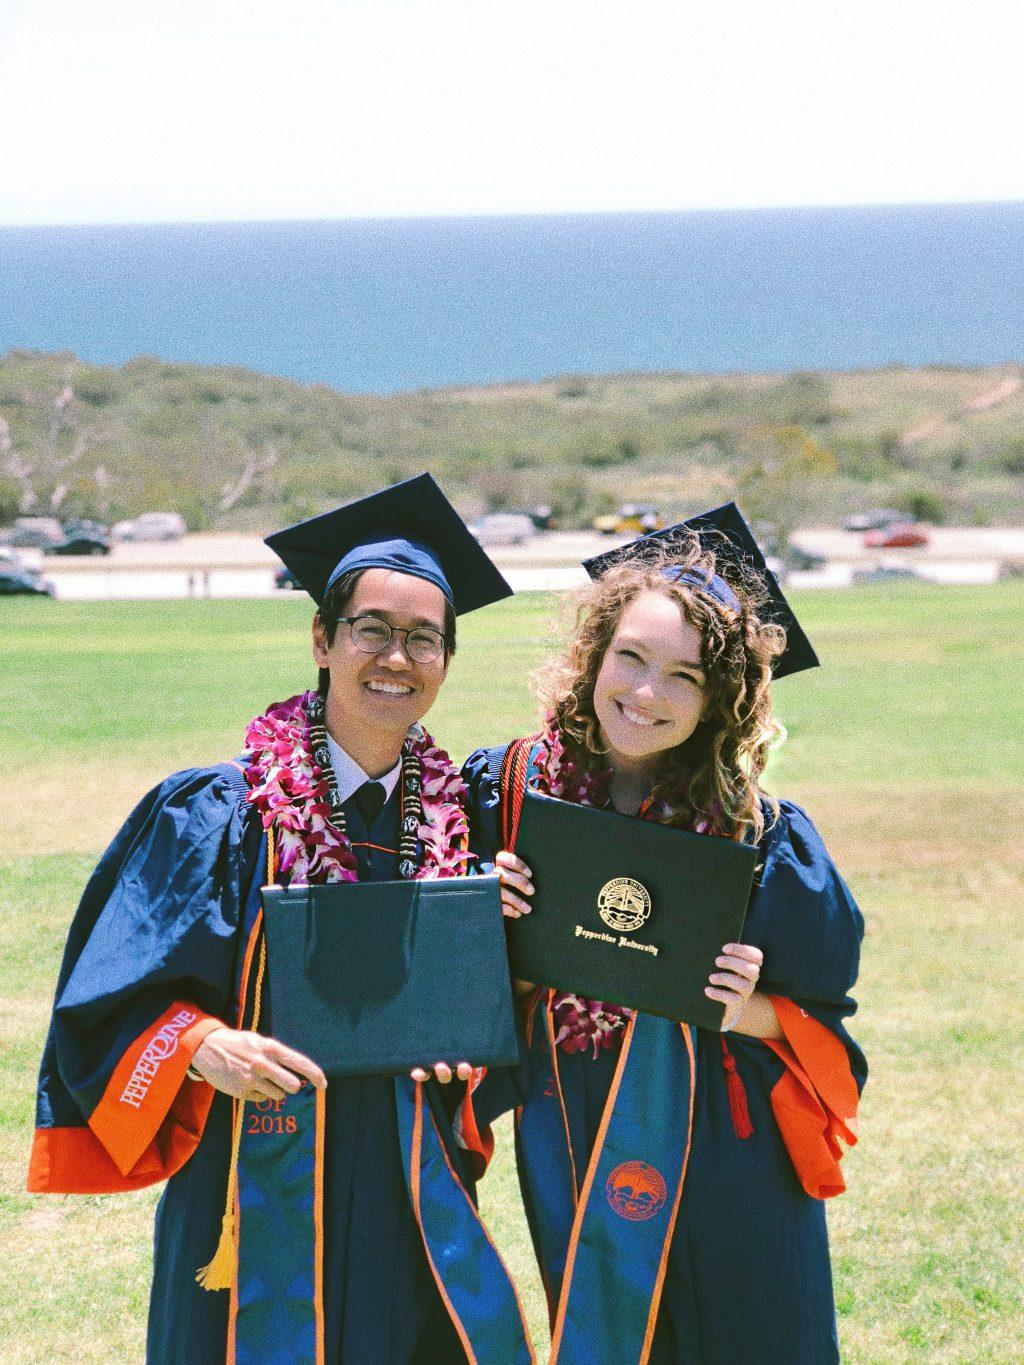 Alumni Justin Lew and Elizabeth Hanley hold their diplomas in front of the Pacific Ocean after graduating from Pepperdine in April 2018. The pair originally started out as friends, but now they have been dating for three years. Photo courtesy of Elizabeth Hanley